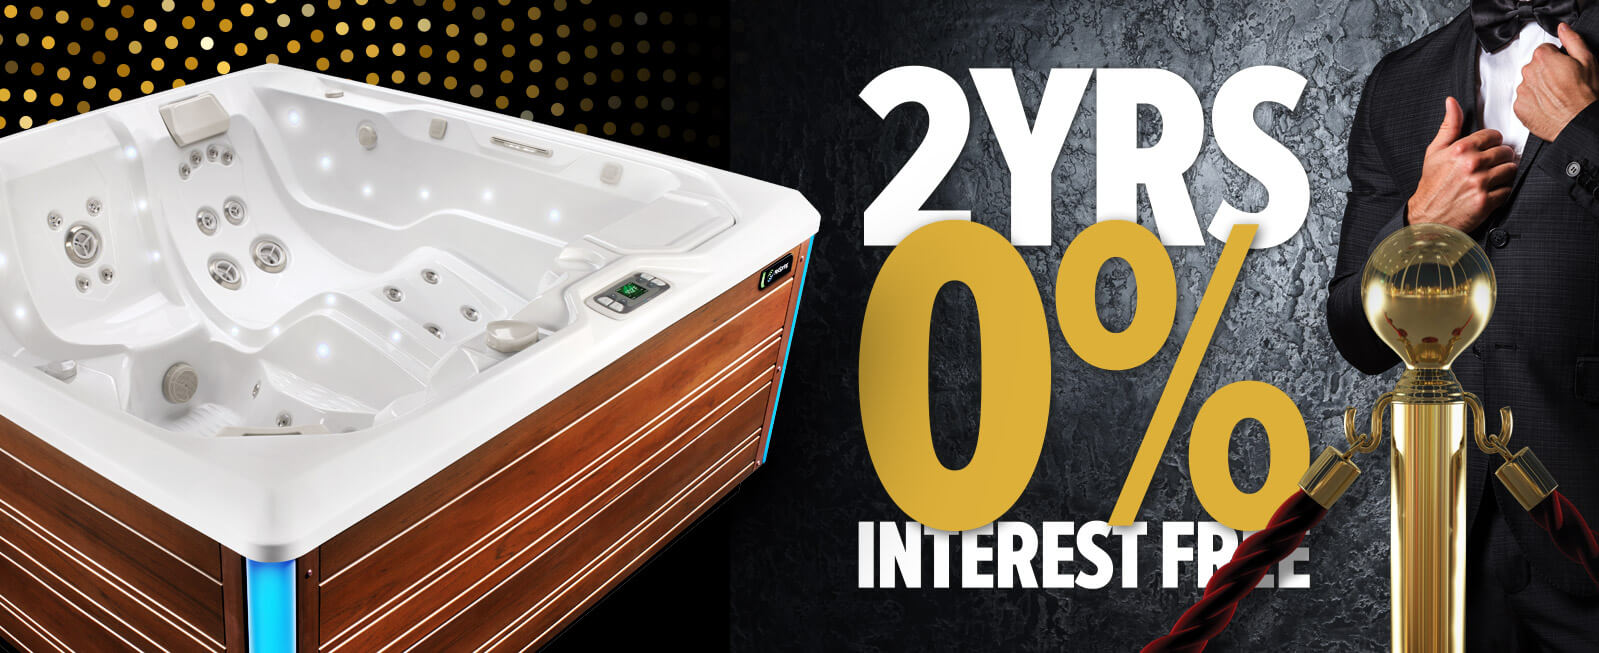 vip exclusive hot tub upgrade offers homepage finance banner